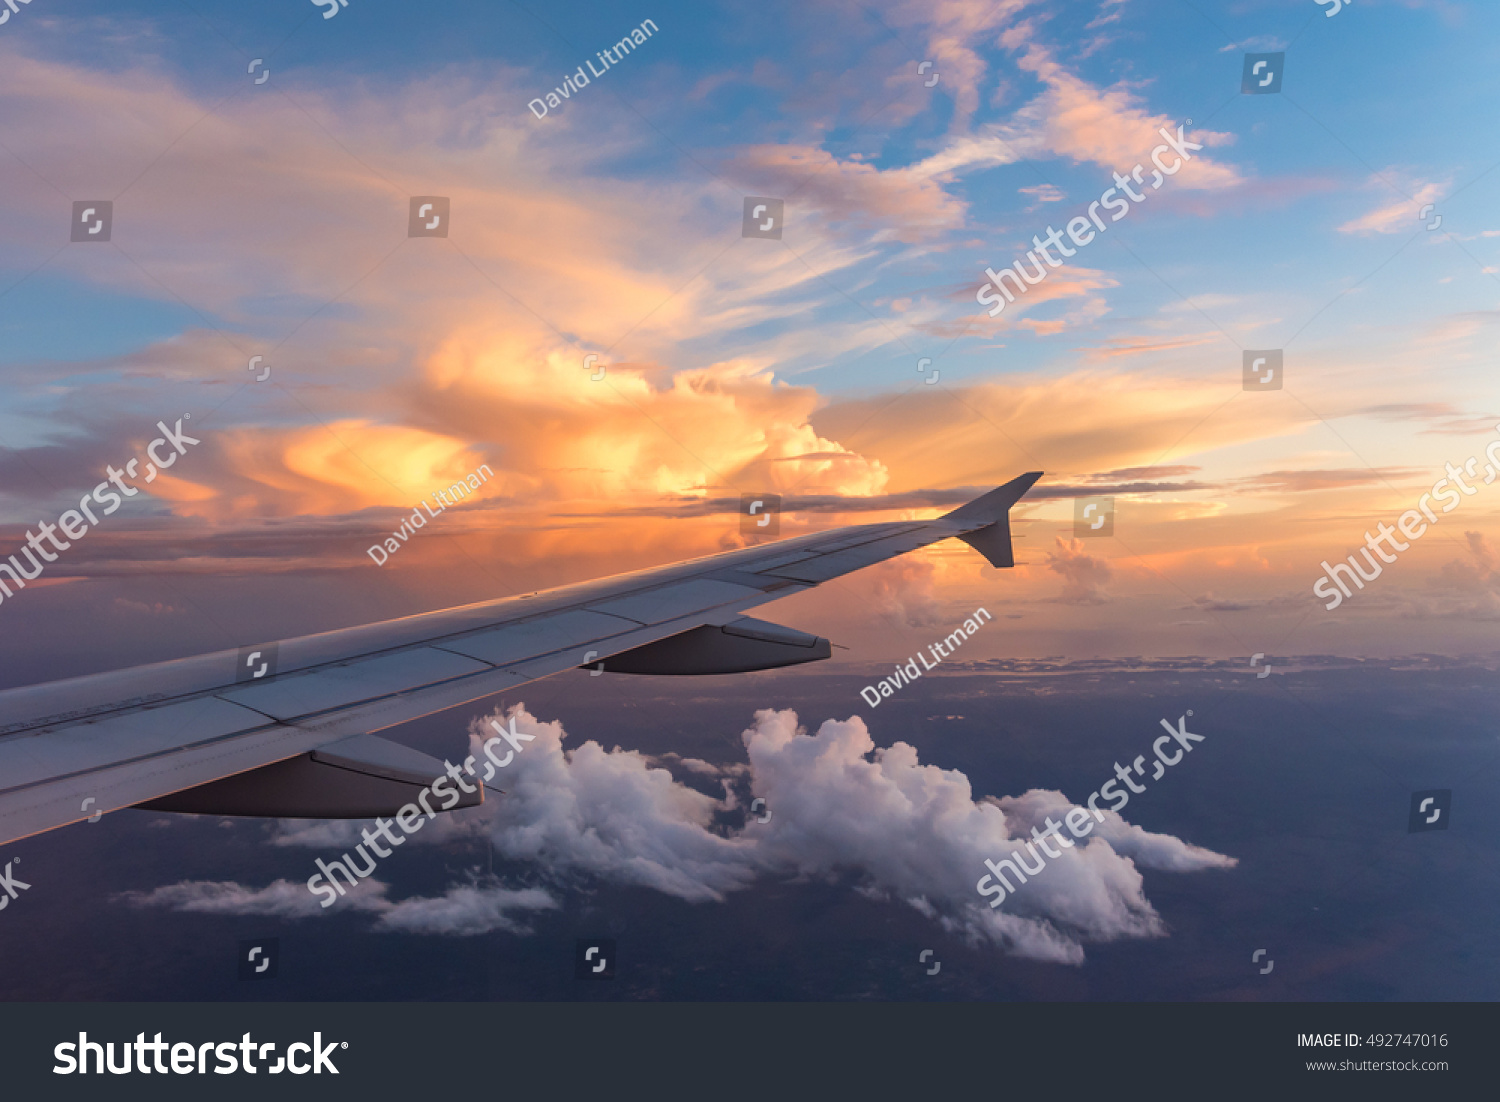 Aerial view of airplane wing with a colorful sunset sky on a partly cloudy day flying towards Fort Lauderdale, Florida, from the west coast.